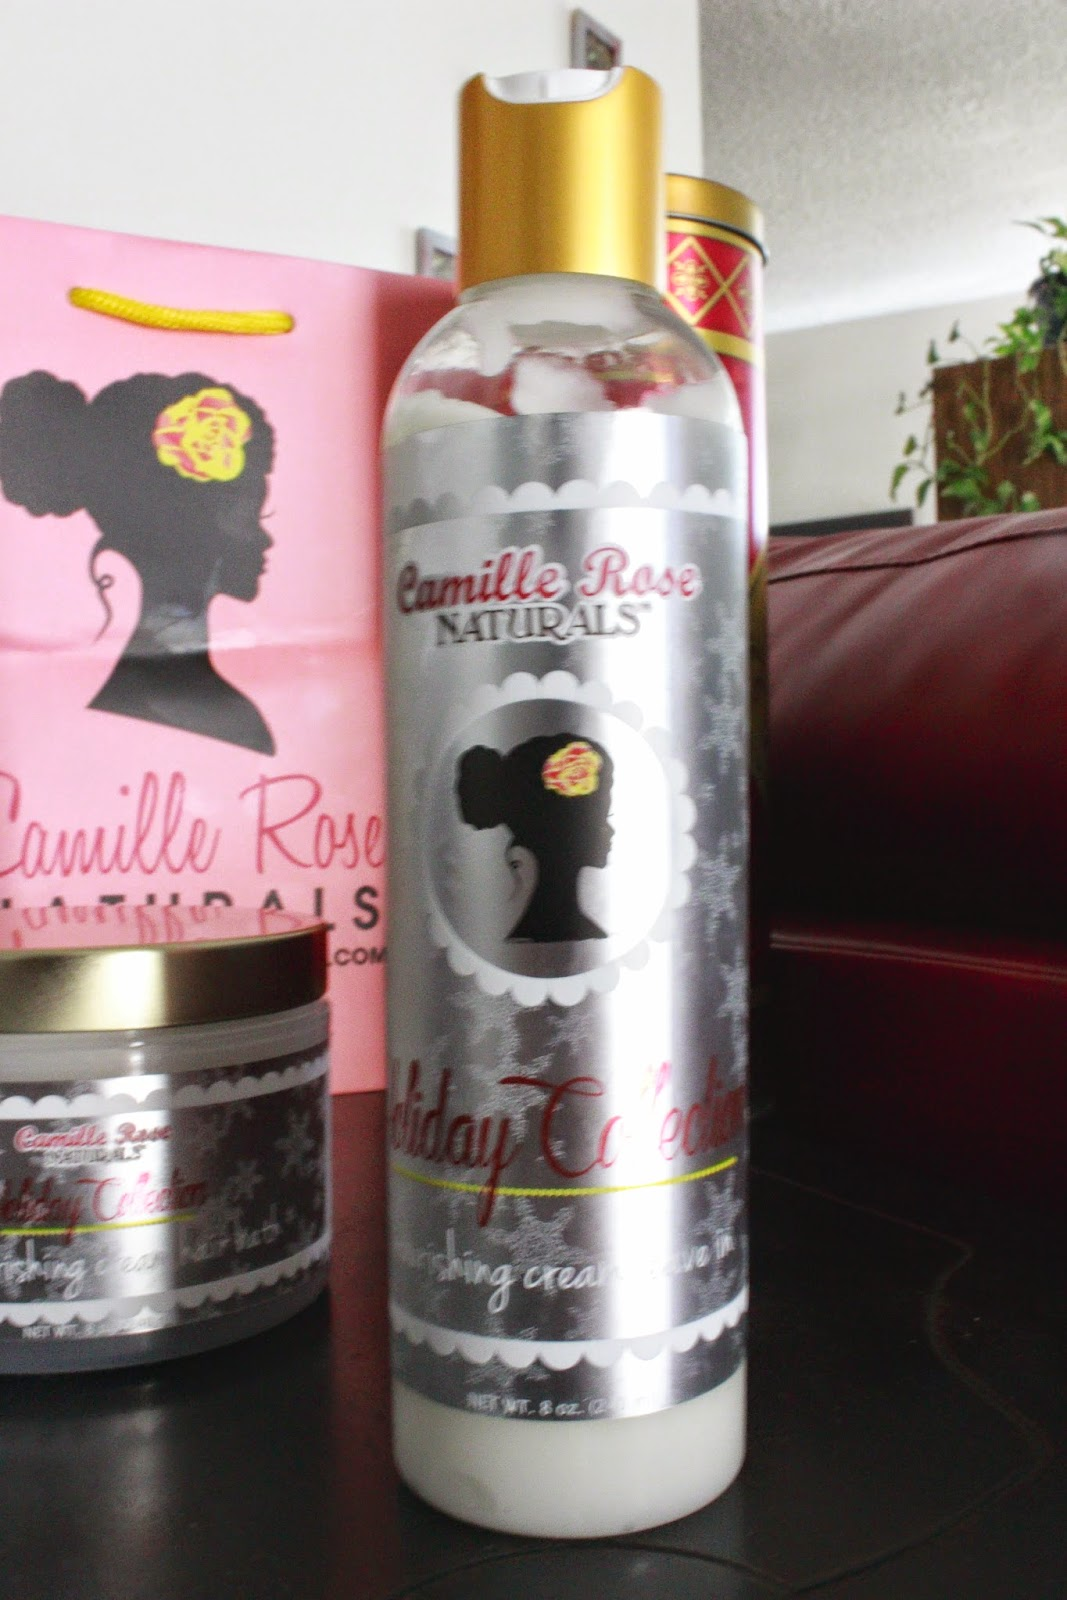 camille-rose-naturals-holiday-collection-review